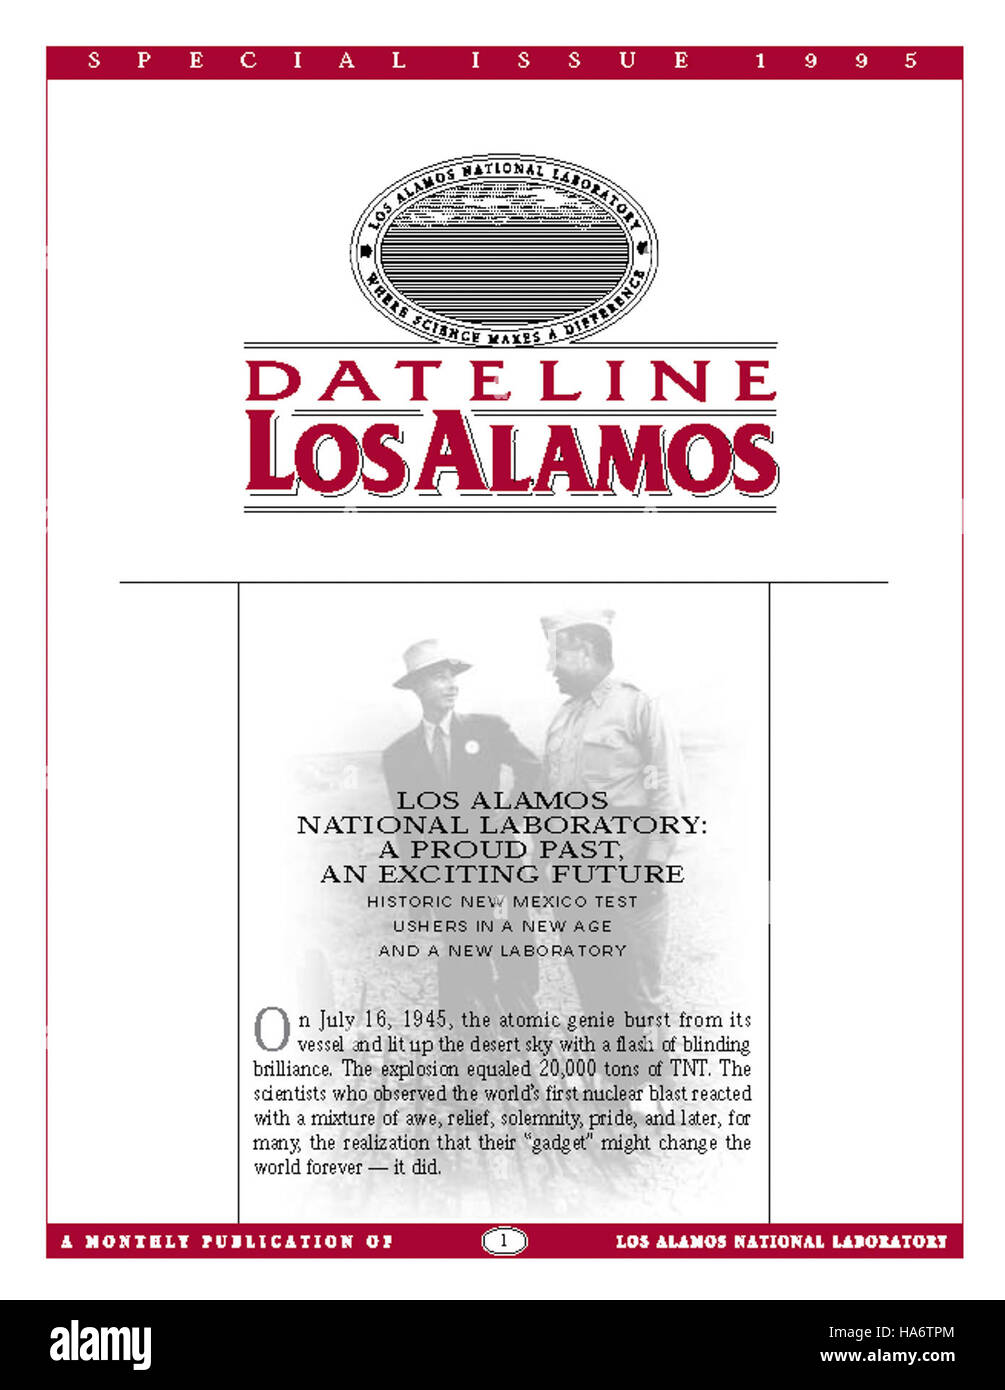 losalamosnatlab 7597465270 Dateline Los Alamos Special Issue 1995 - Stock Image